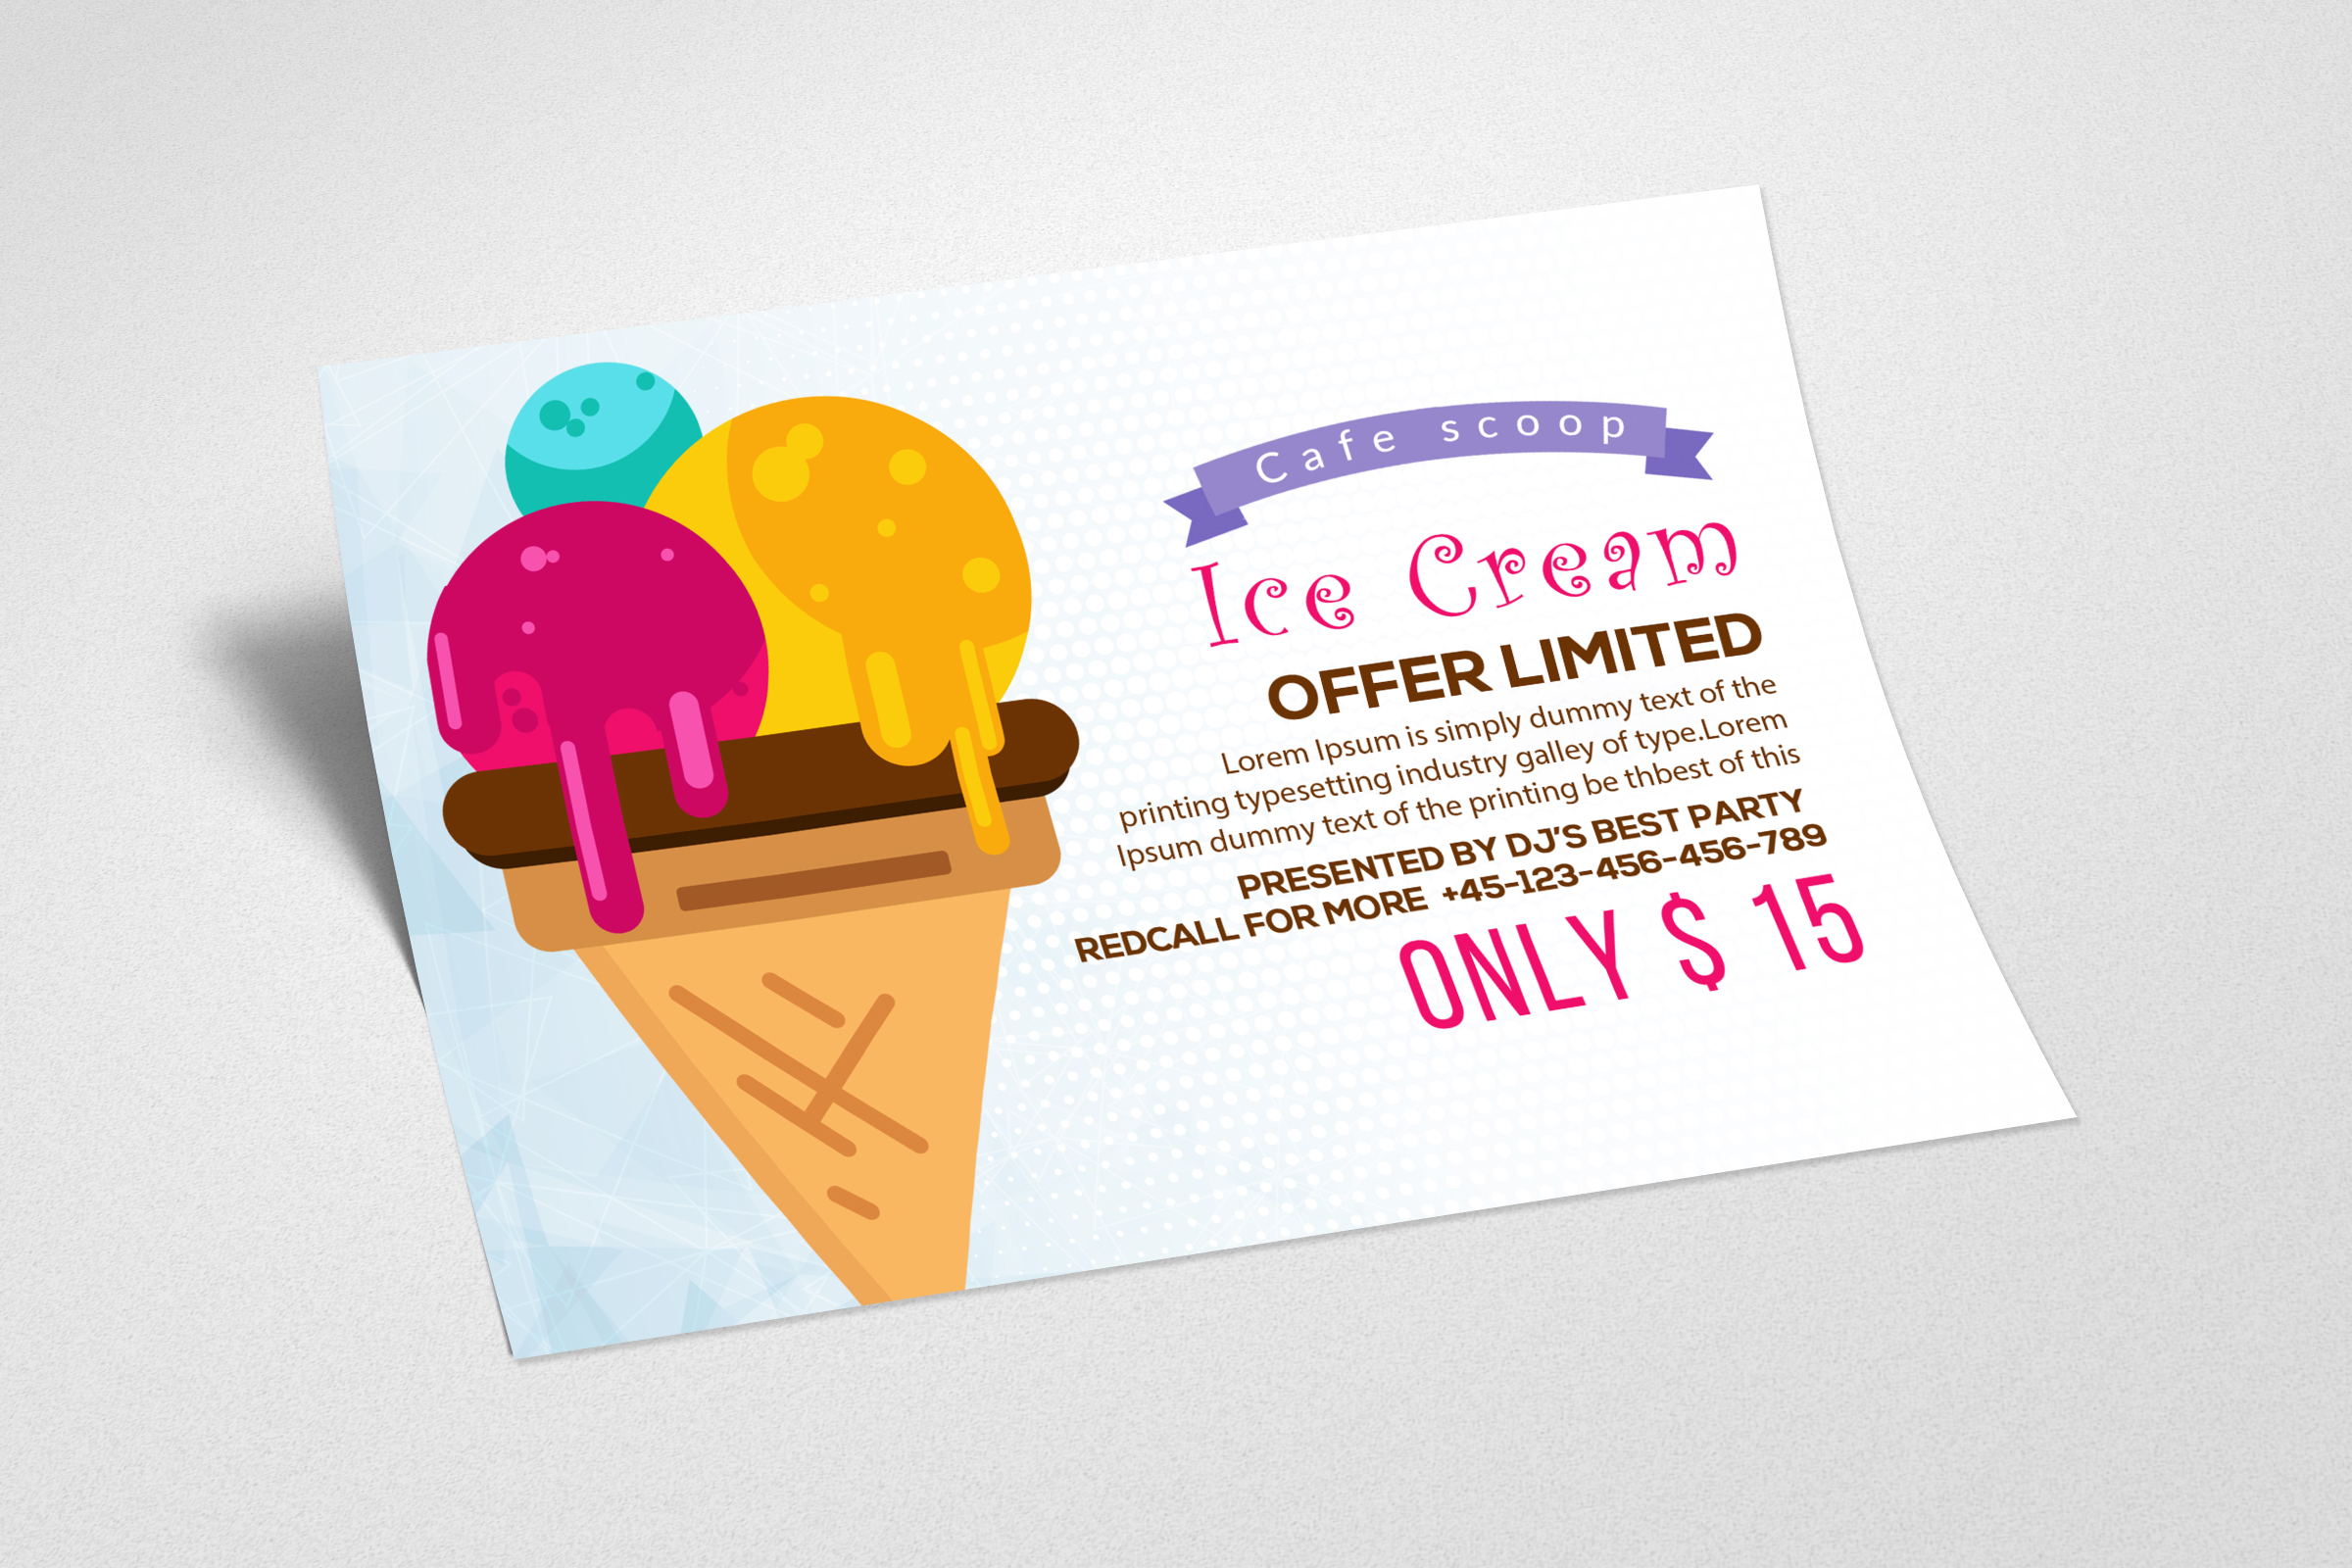 Ice cream Discount Card Template example image 2